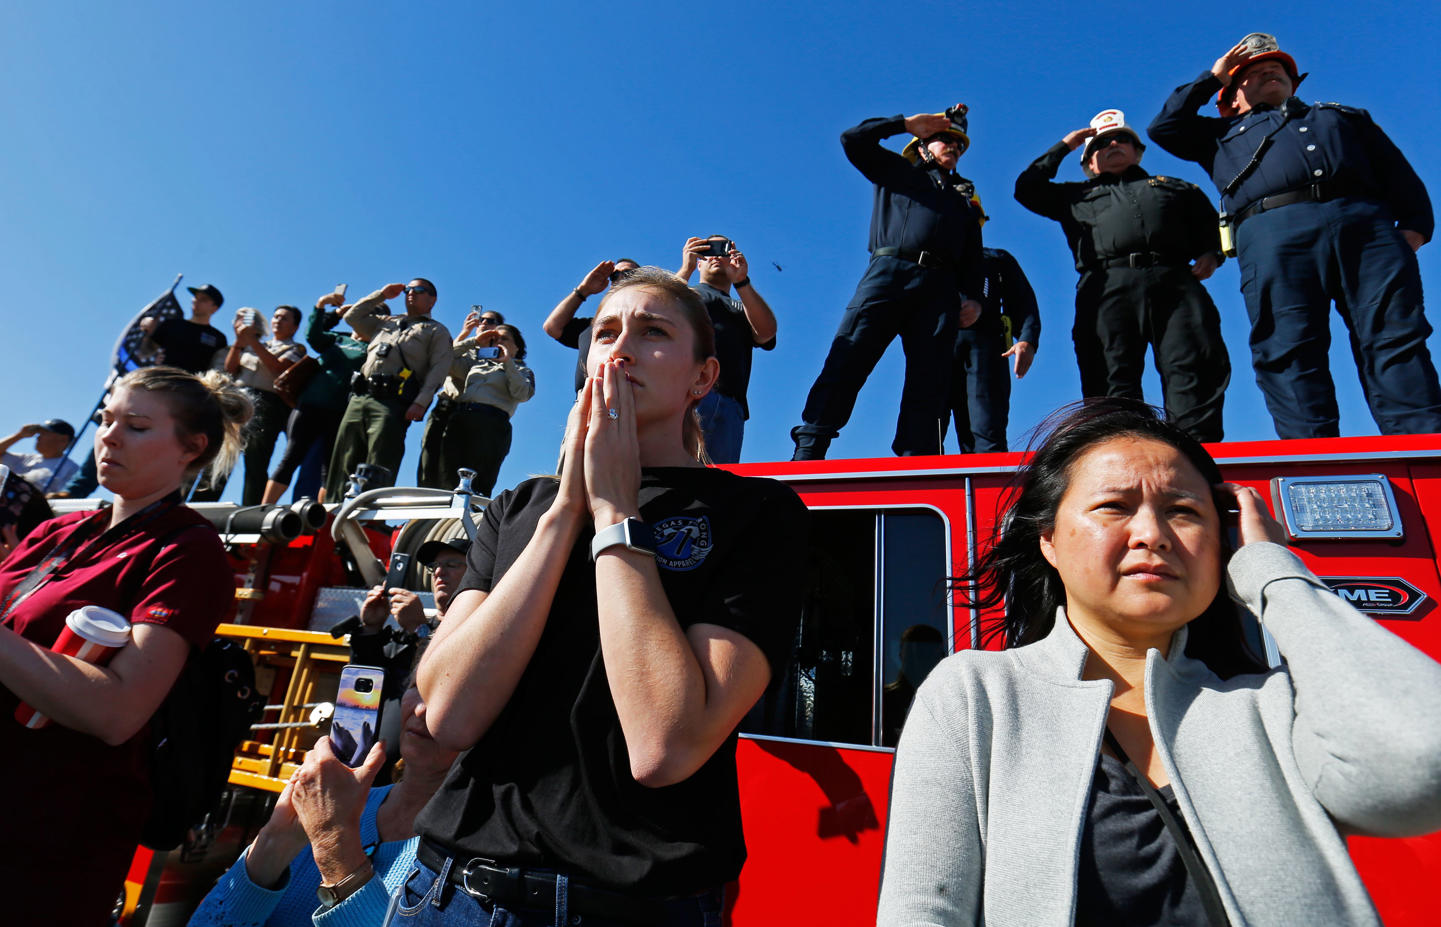 Madison Fuller (middle) of Thousand Oaks reacts as she watches from an overpass as a procession for the body of Sergeant Ron Helus, who died in a shooting incident at a Thousand Oaks bar, drives down Ventura HIghway 101 in Thousand Oaks, California, U.S. November 8, 2018.